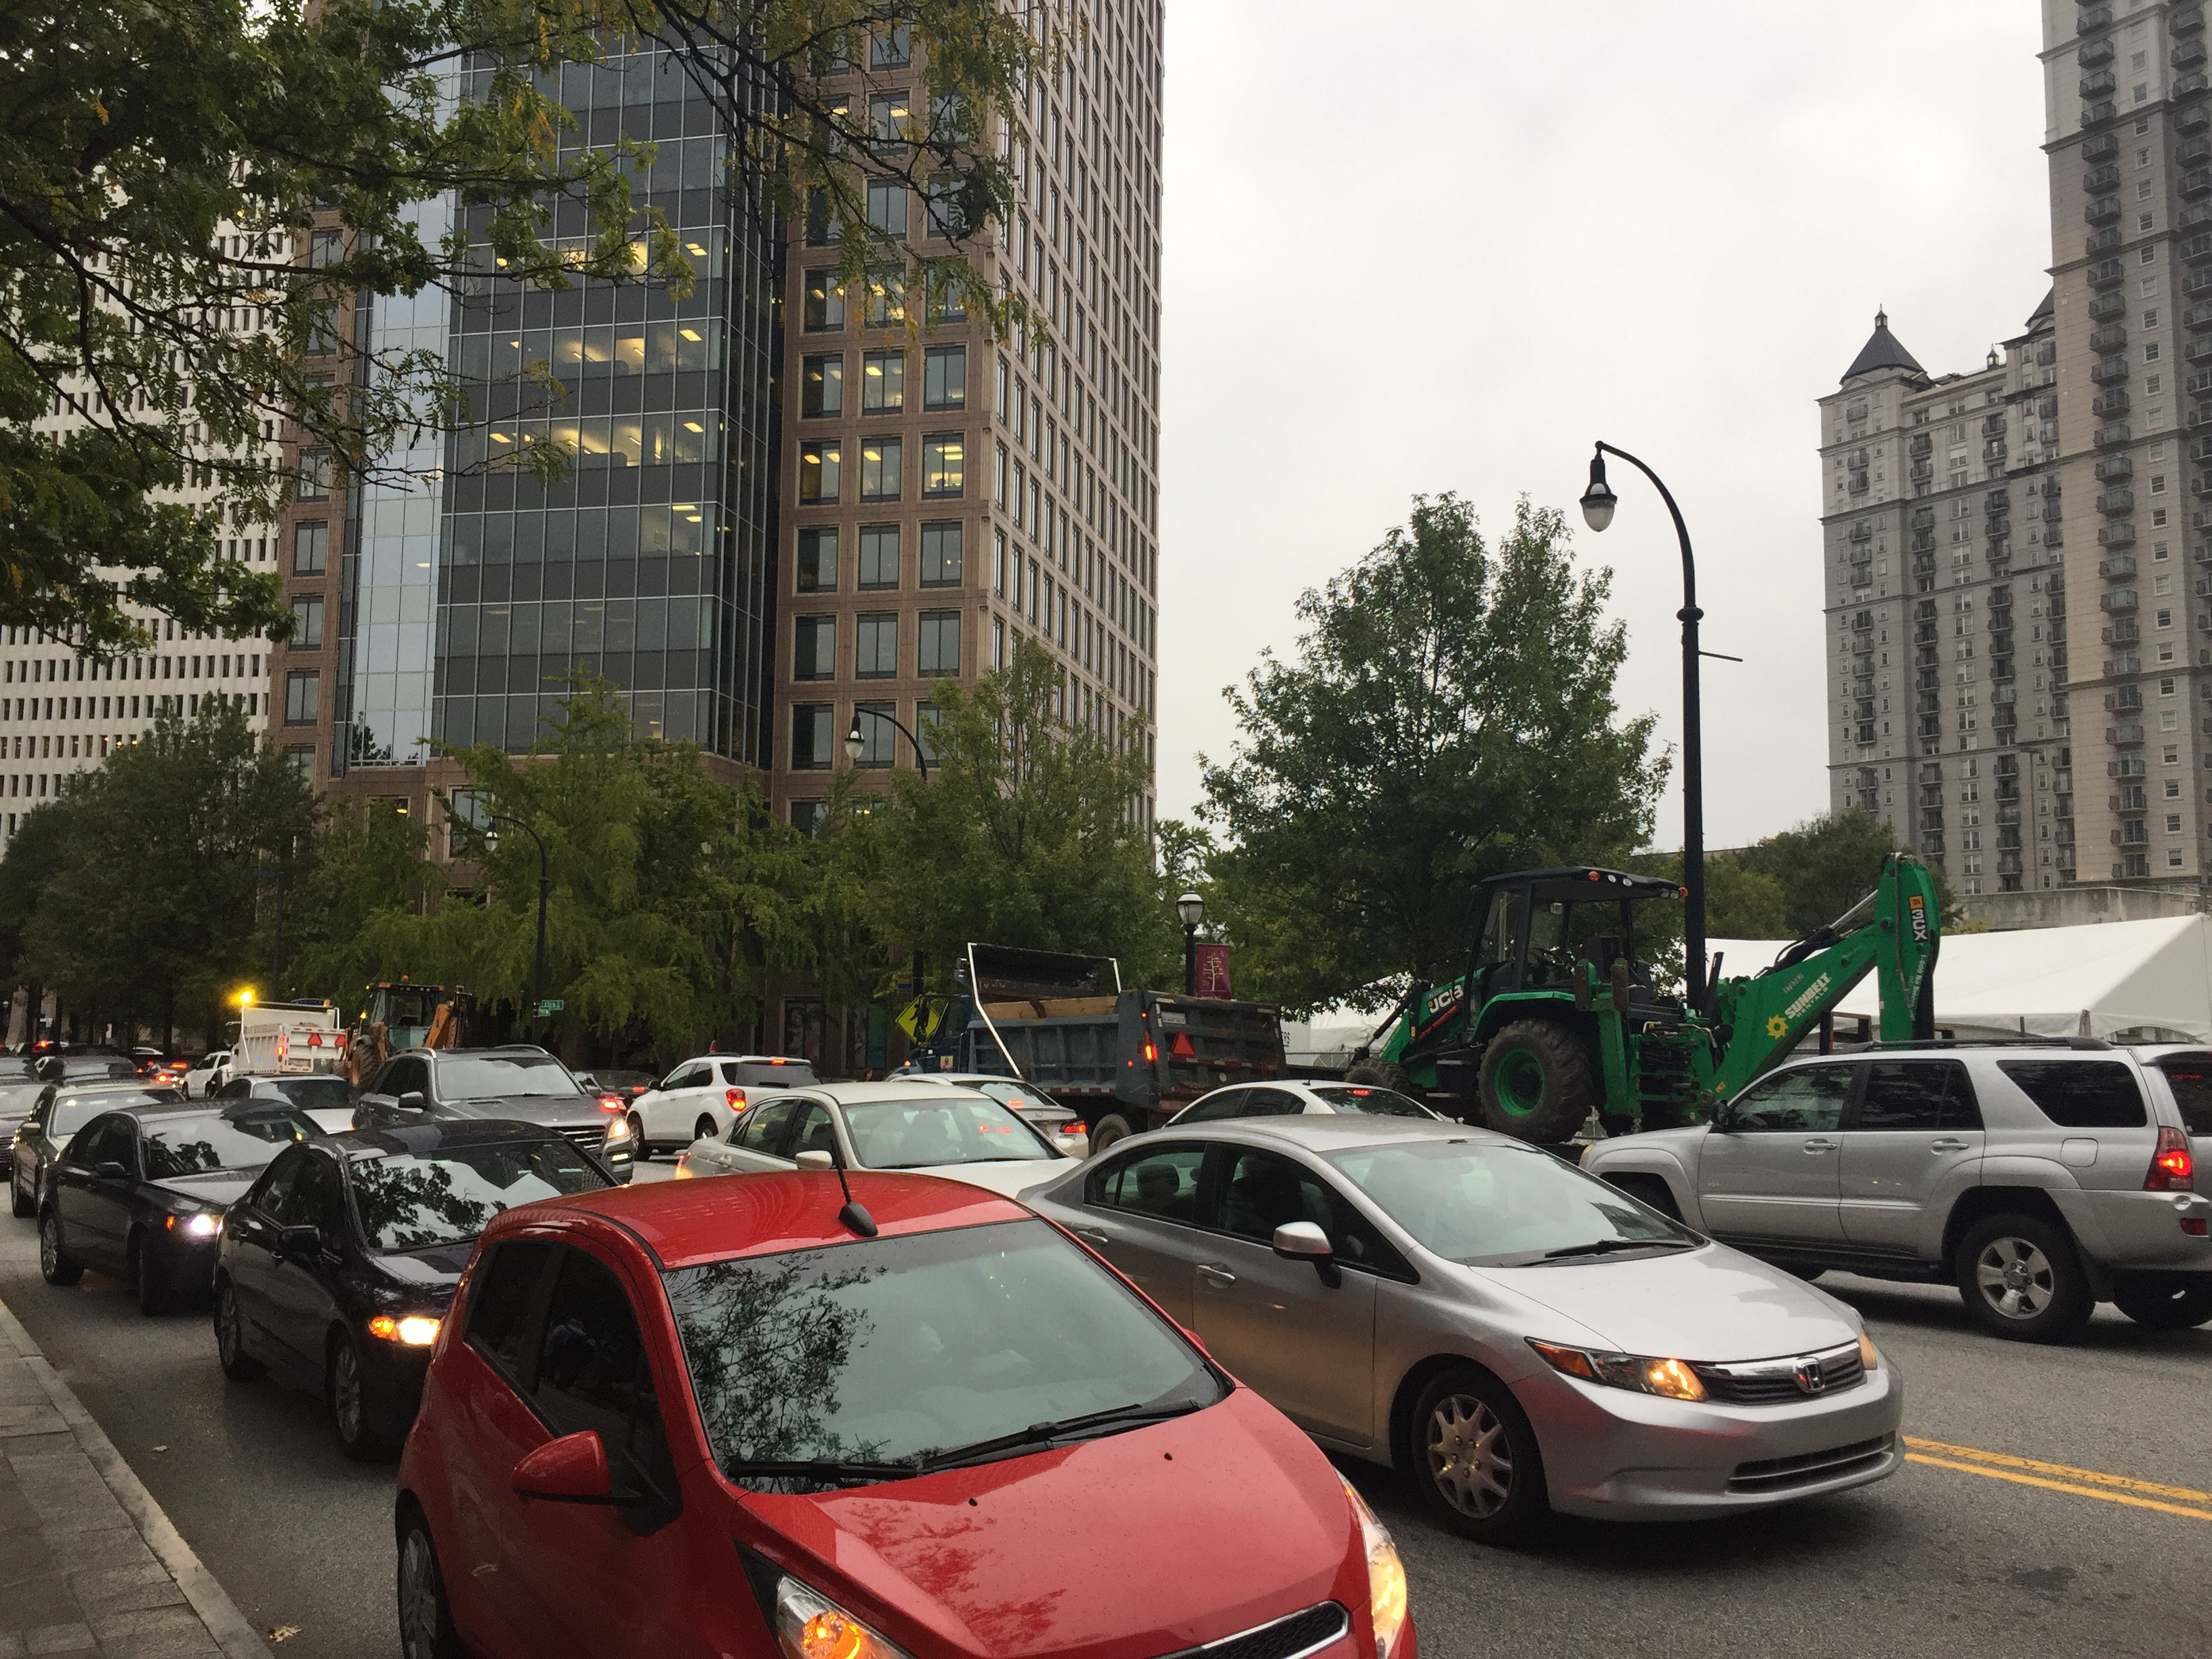 Traffic stopped in both directions on a packed city street.